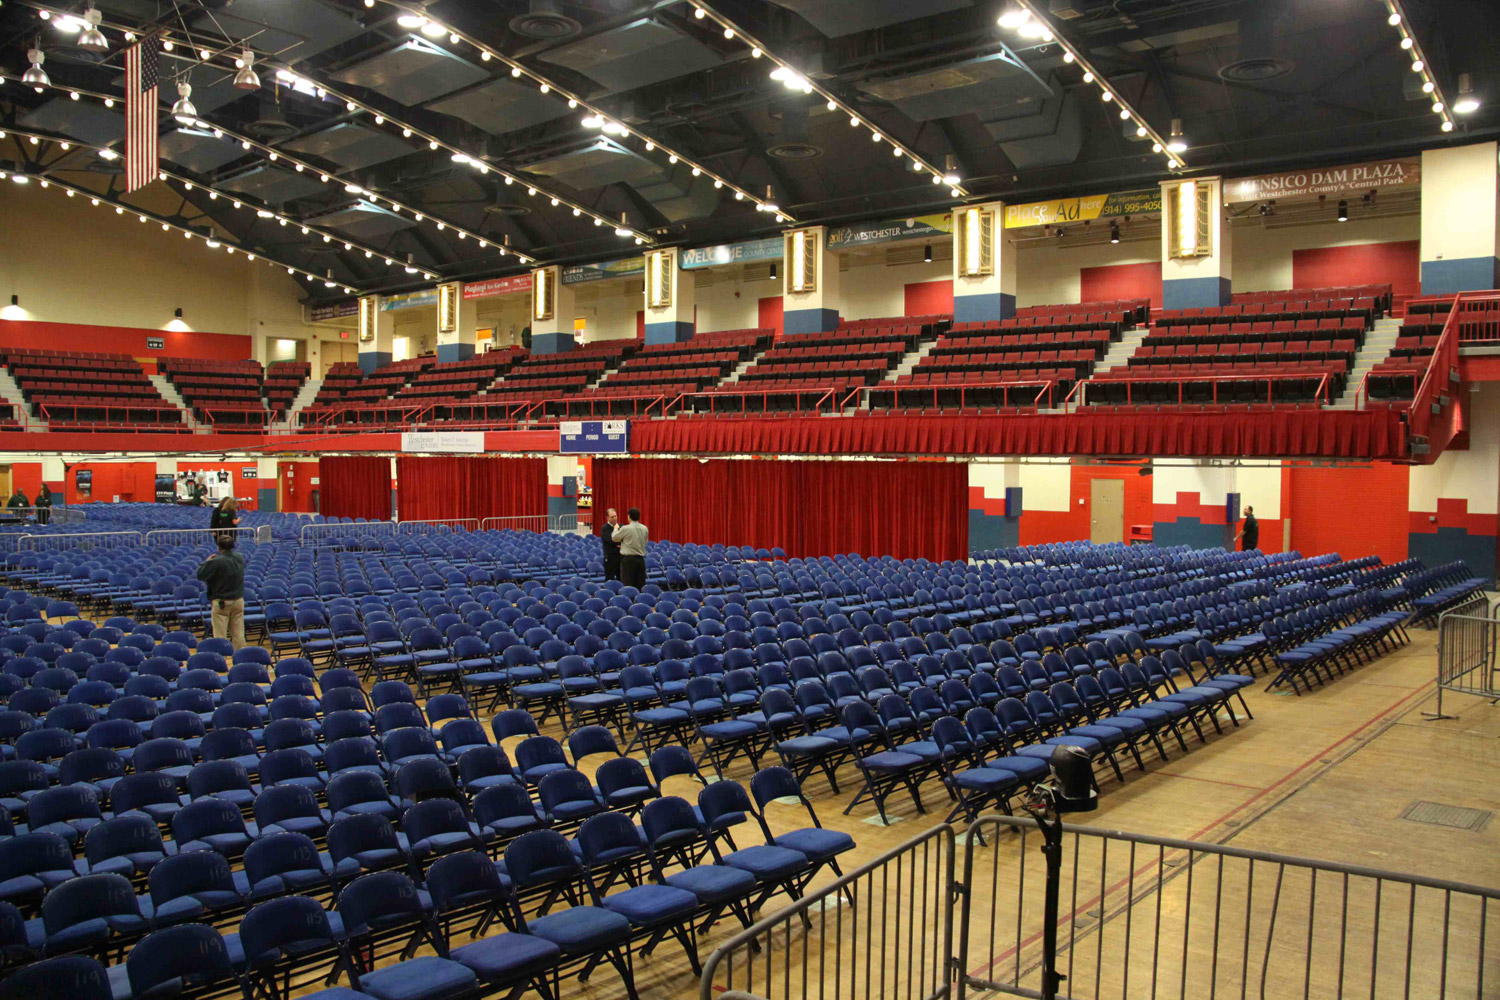 Westchester County Center Wsdg